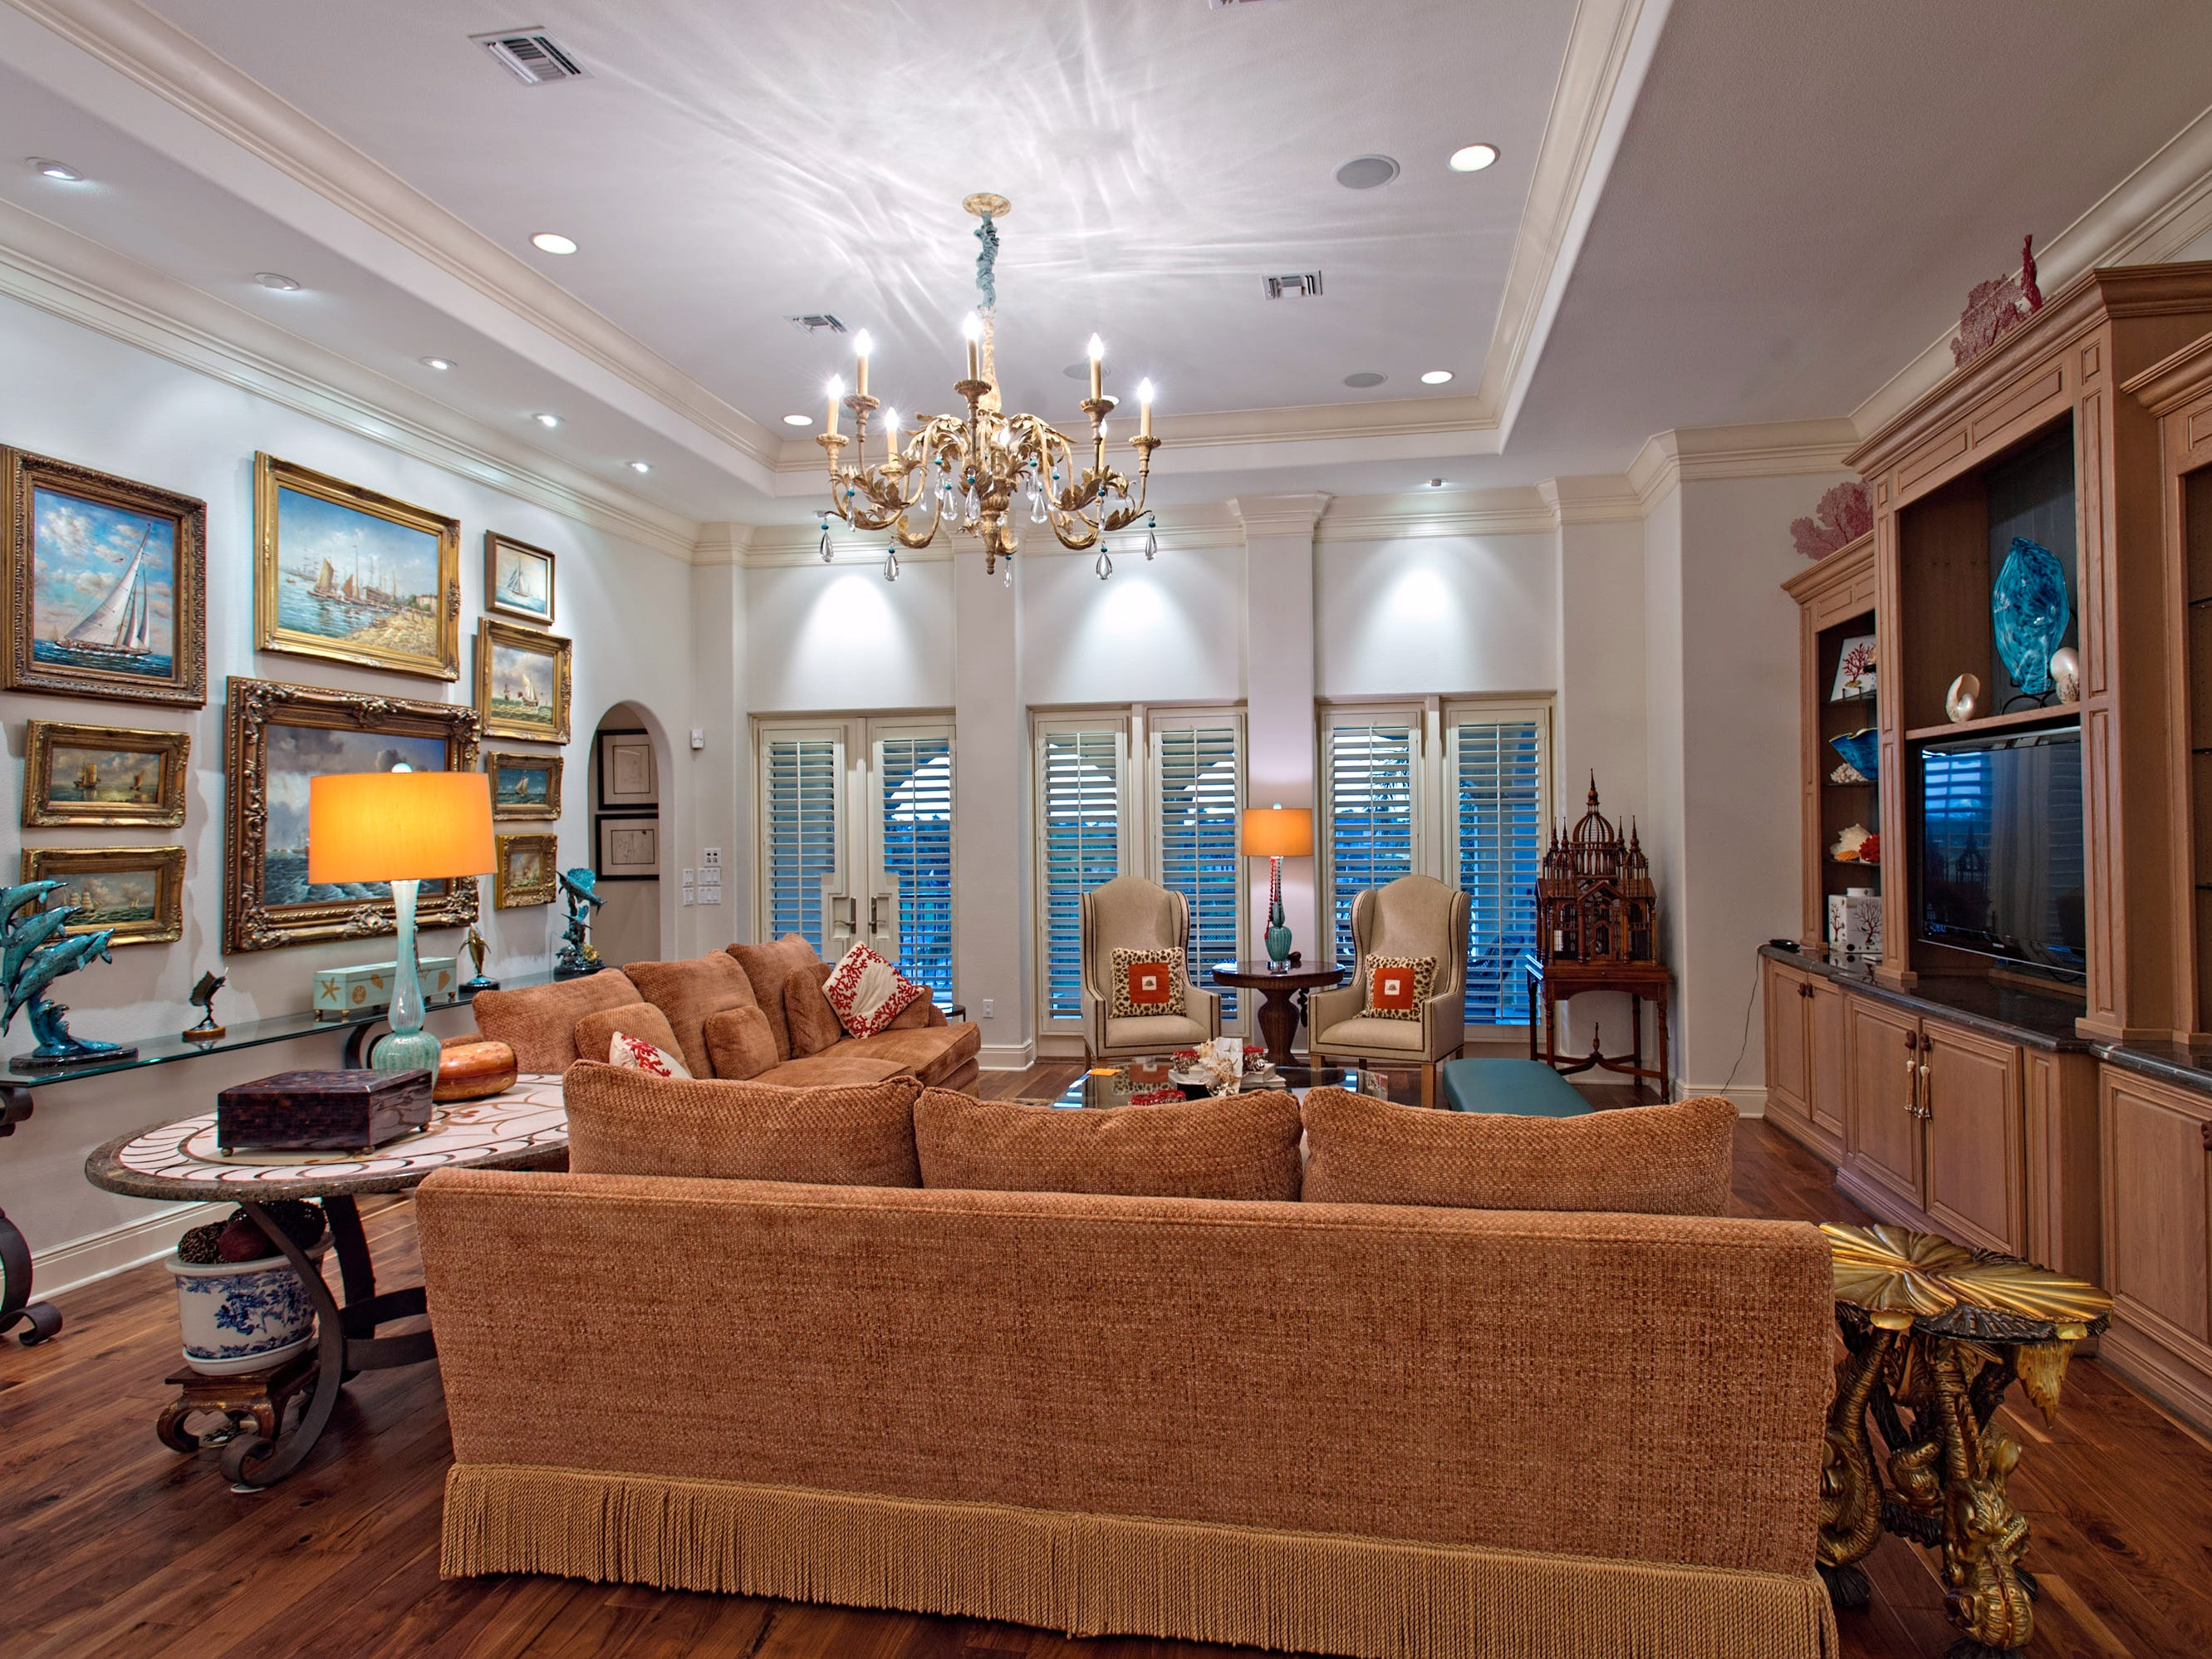 Coastal elegance abounds in the second floor living space with a beautiful crown molding, a wall of built ins and a wall of space  to display art; with a Brazilian wood floors